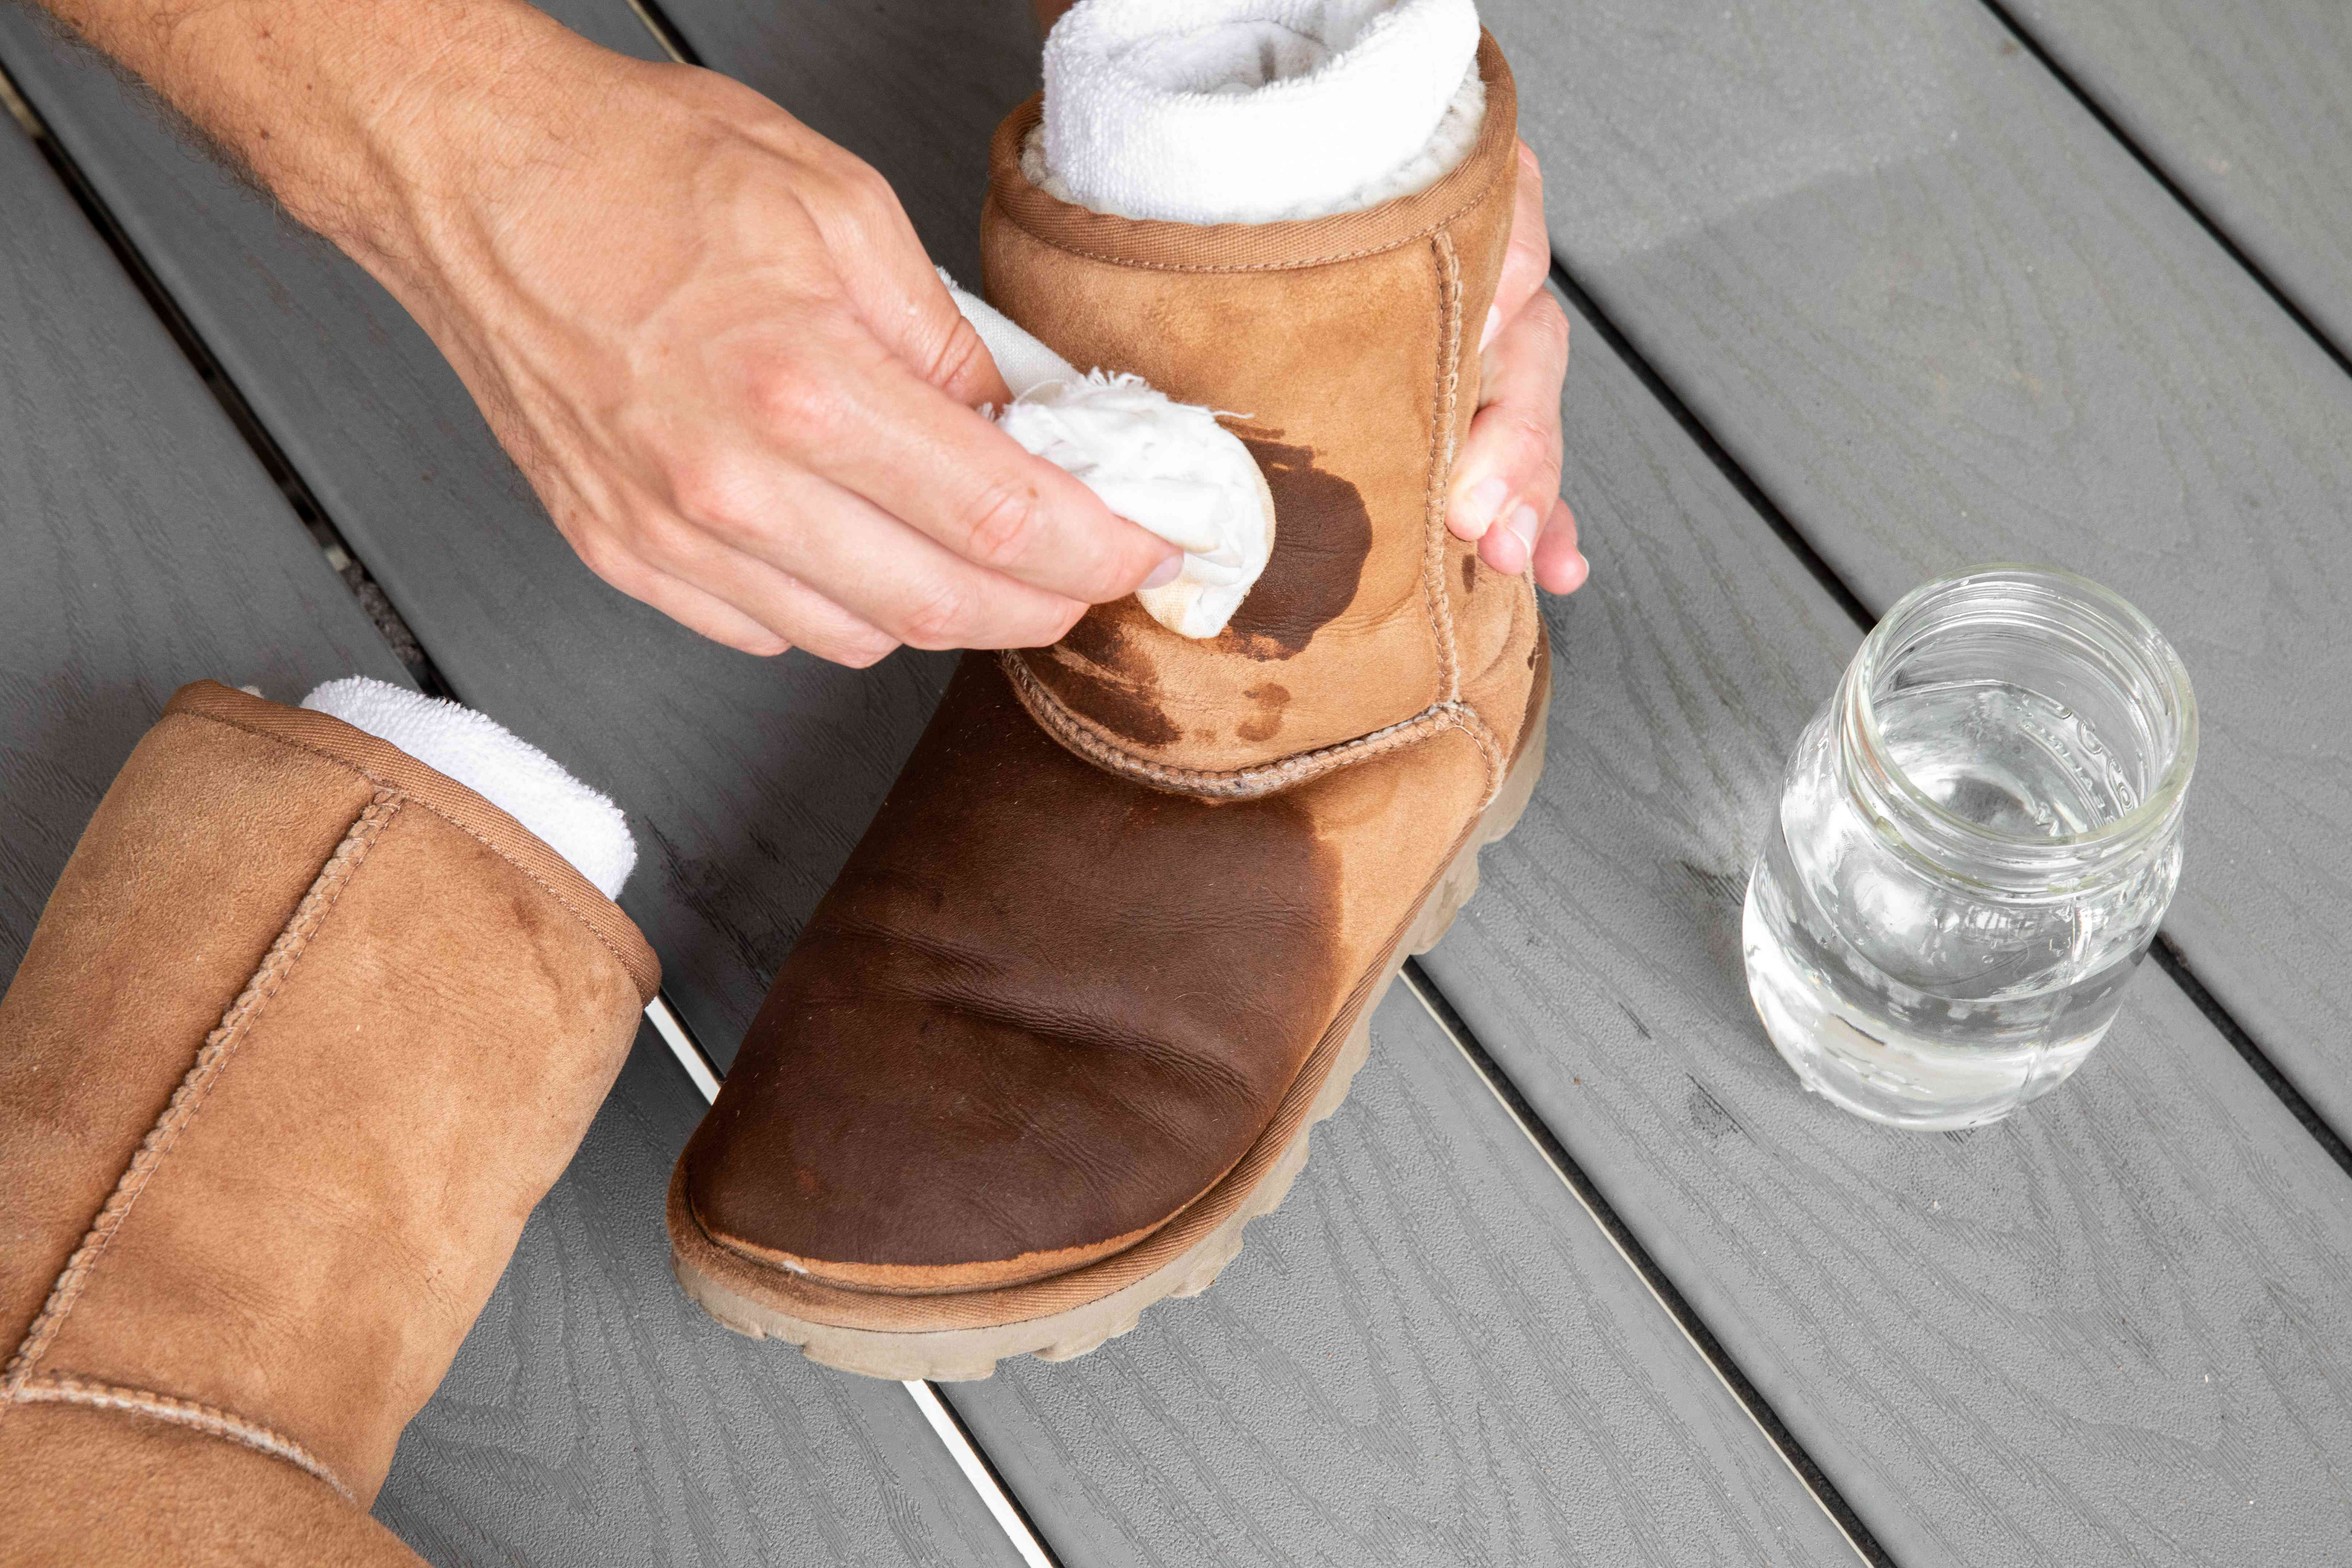 Someone dabbing Ugg boots with a vinegar solution